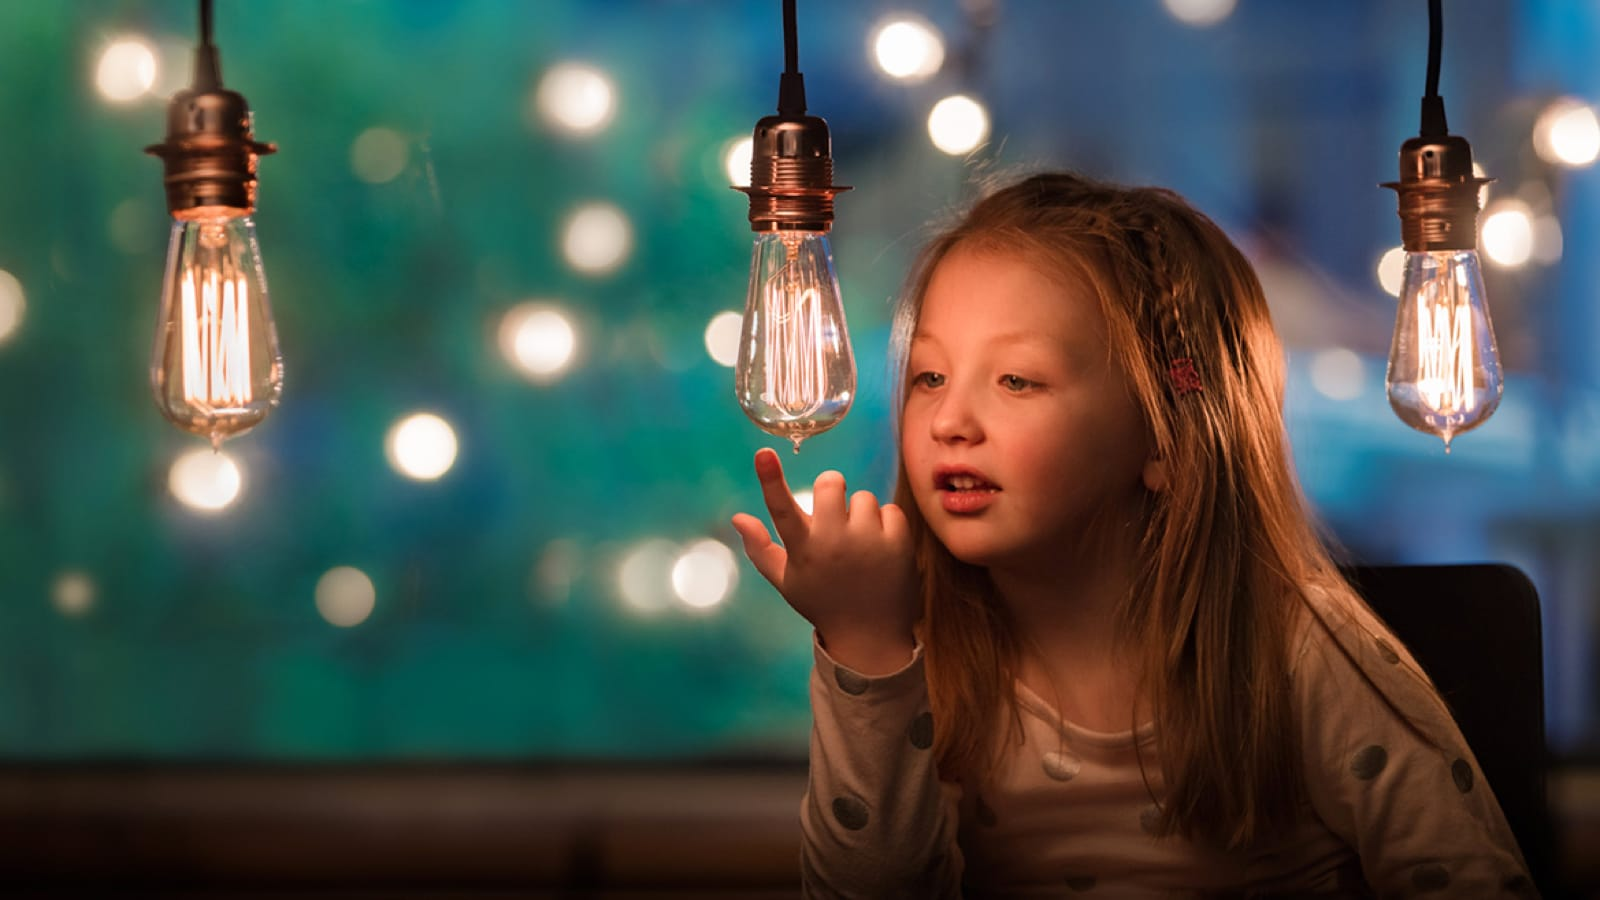 Young girl looking at light bulbs